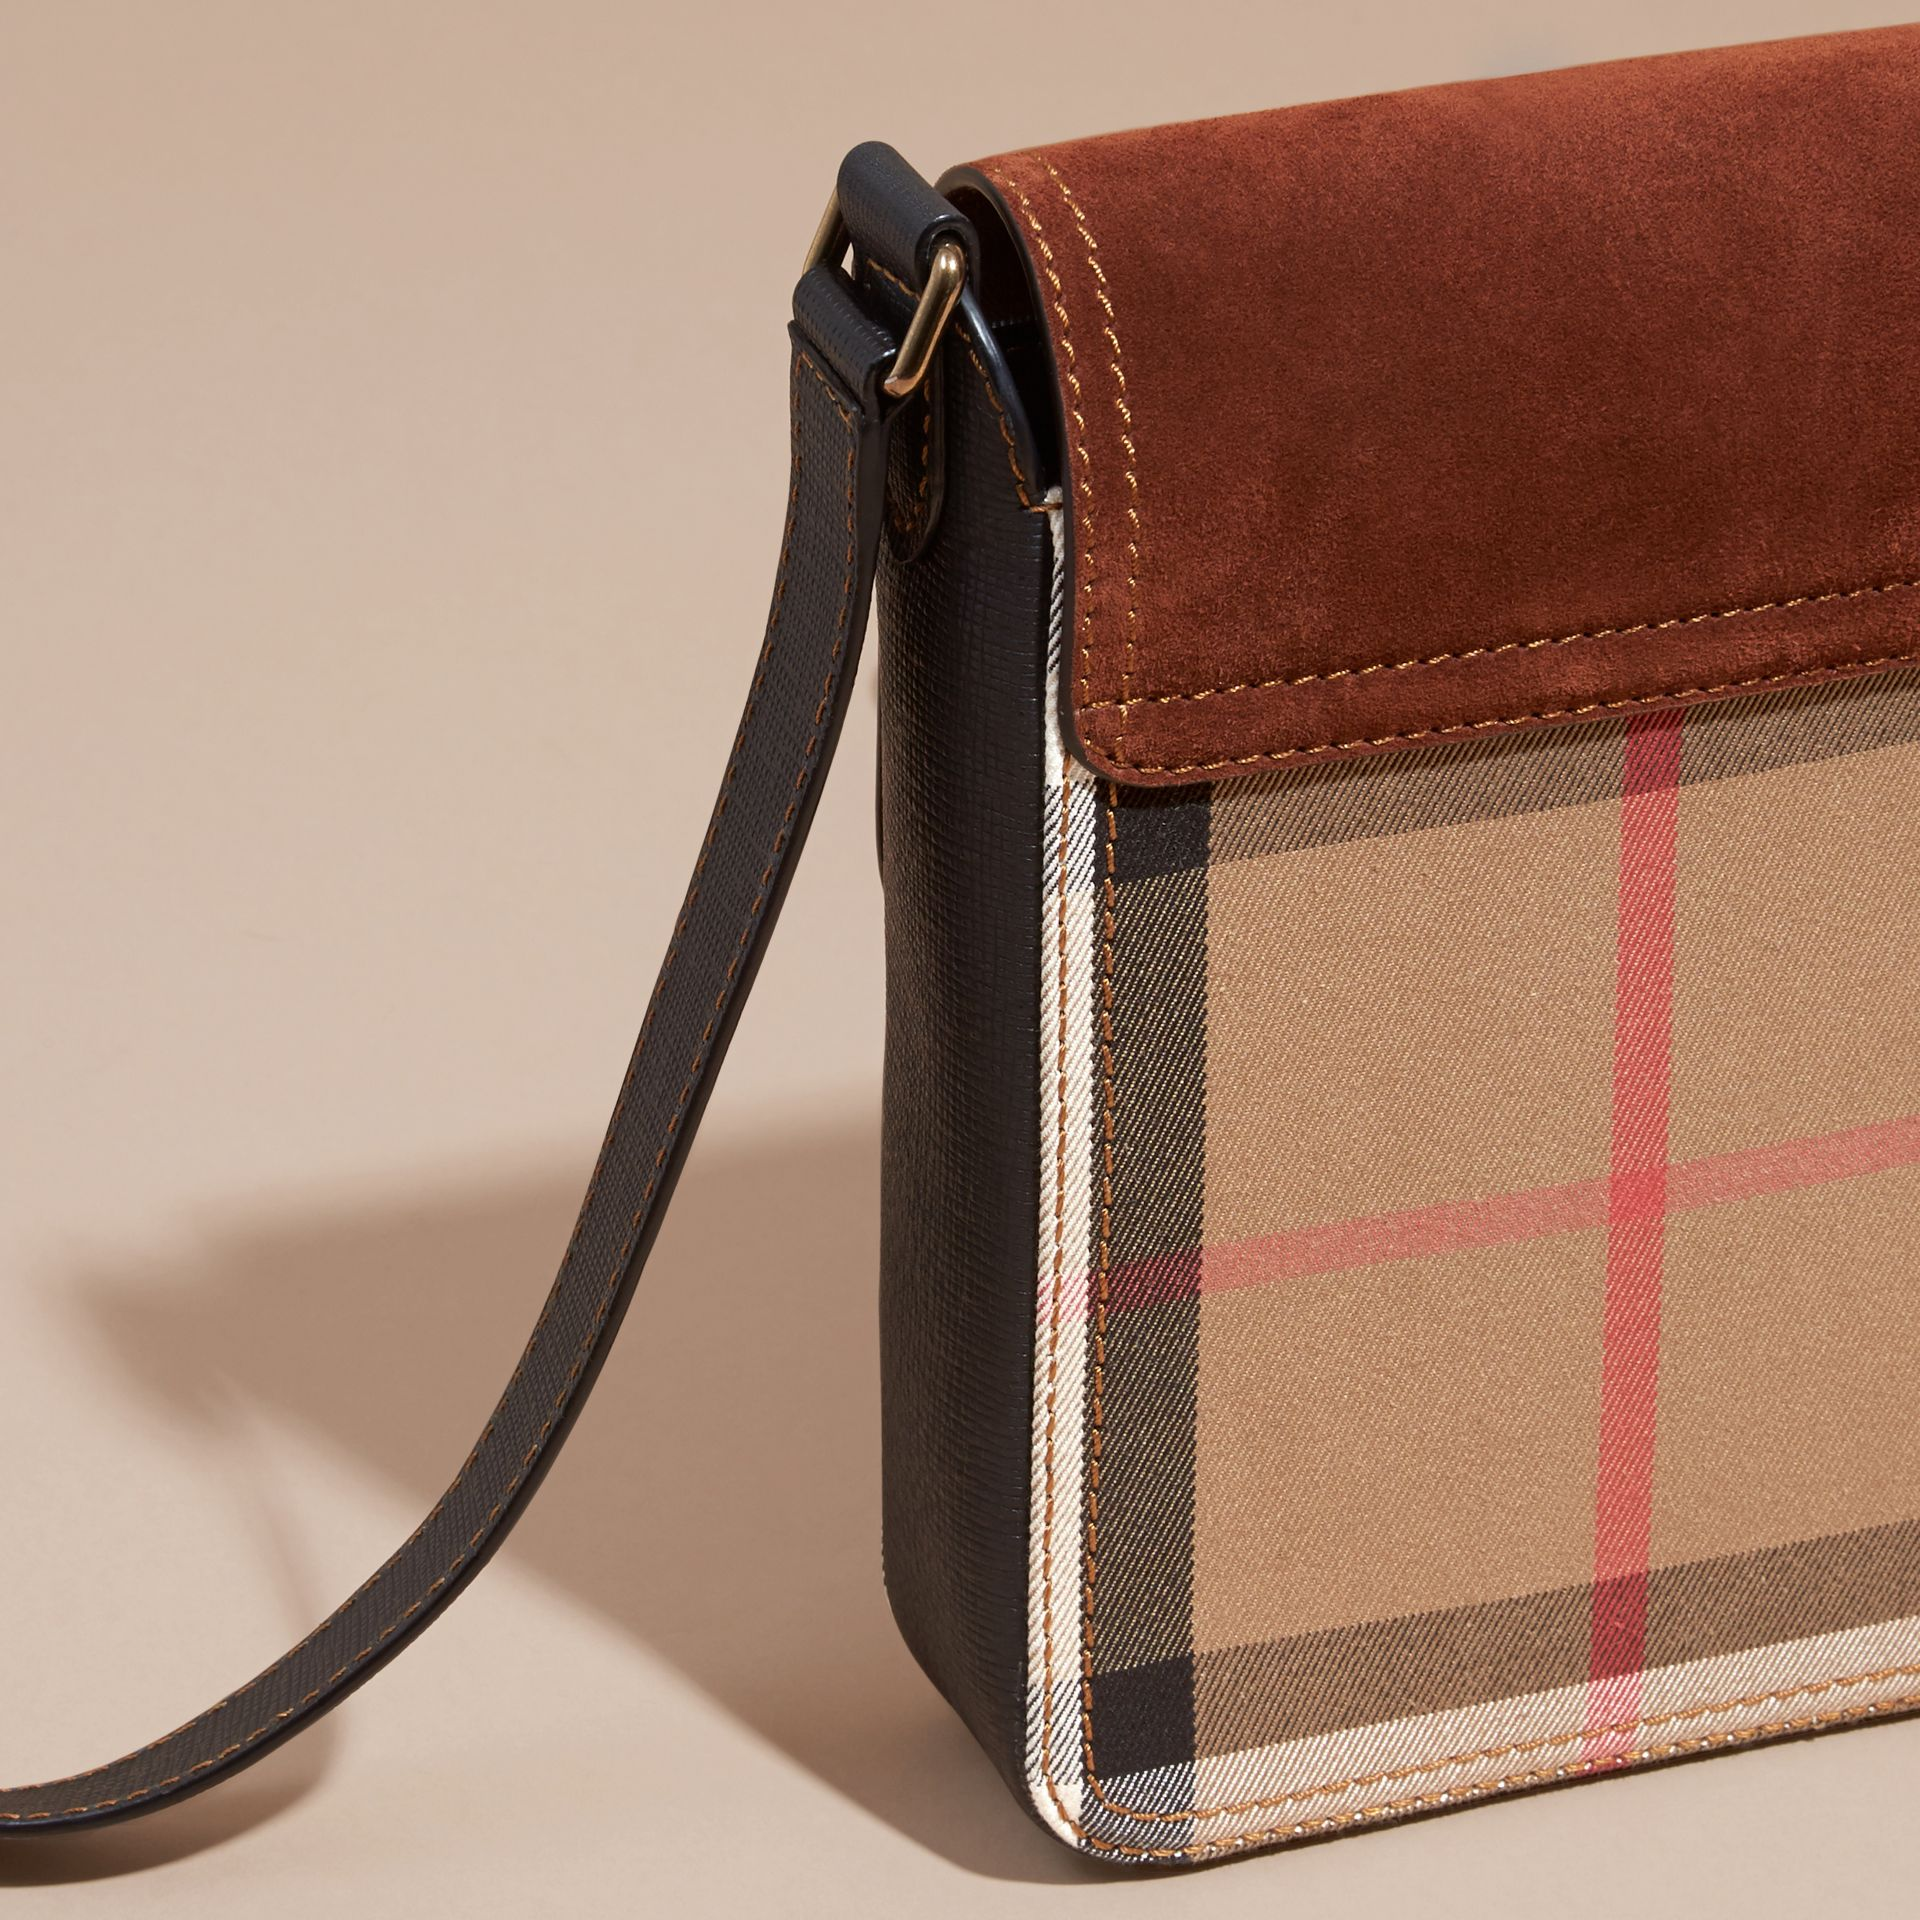 Russet brown The Small Satchel in English Suede and House Check Russet Brown - gallery image 4